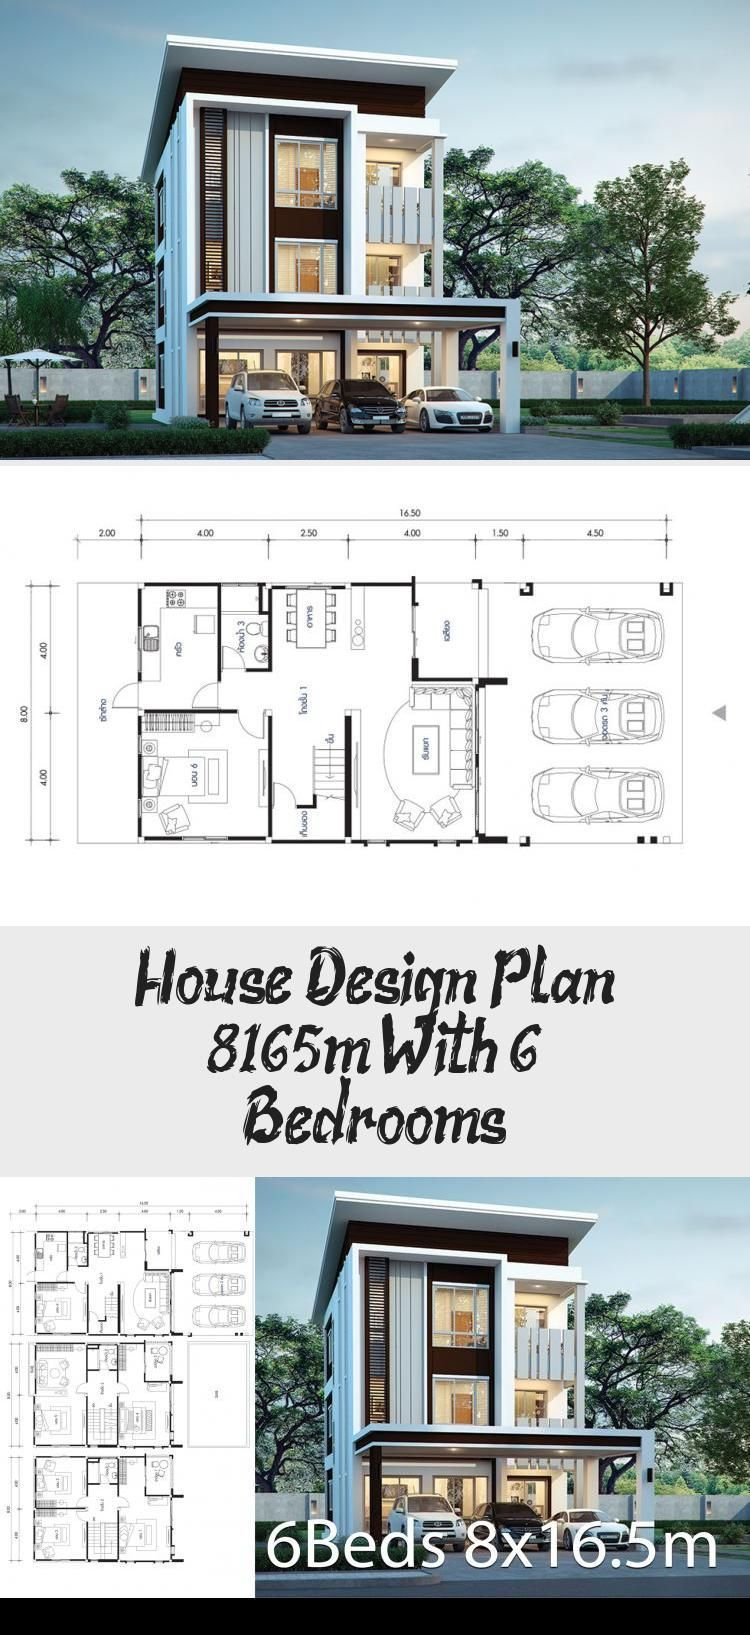 House Design Plan 8x16 5m With 6 Bedrooms Home Design With Plan Courtyardhous 8x165m Bedrooms In 2020 Home Design Plans Courtyard House Plans Sims House Plans